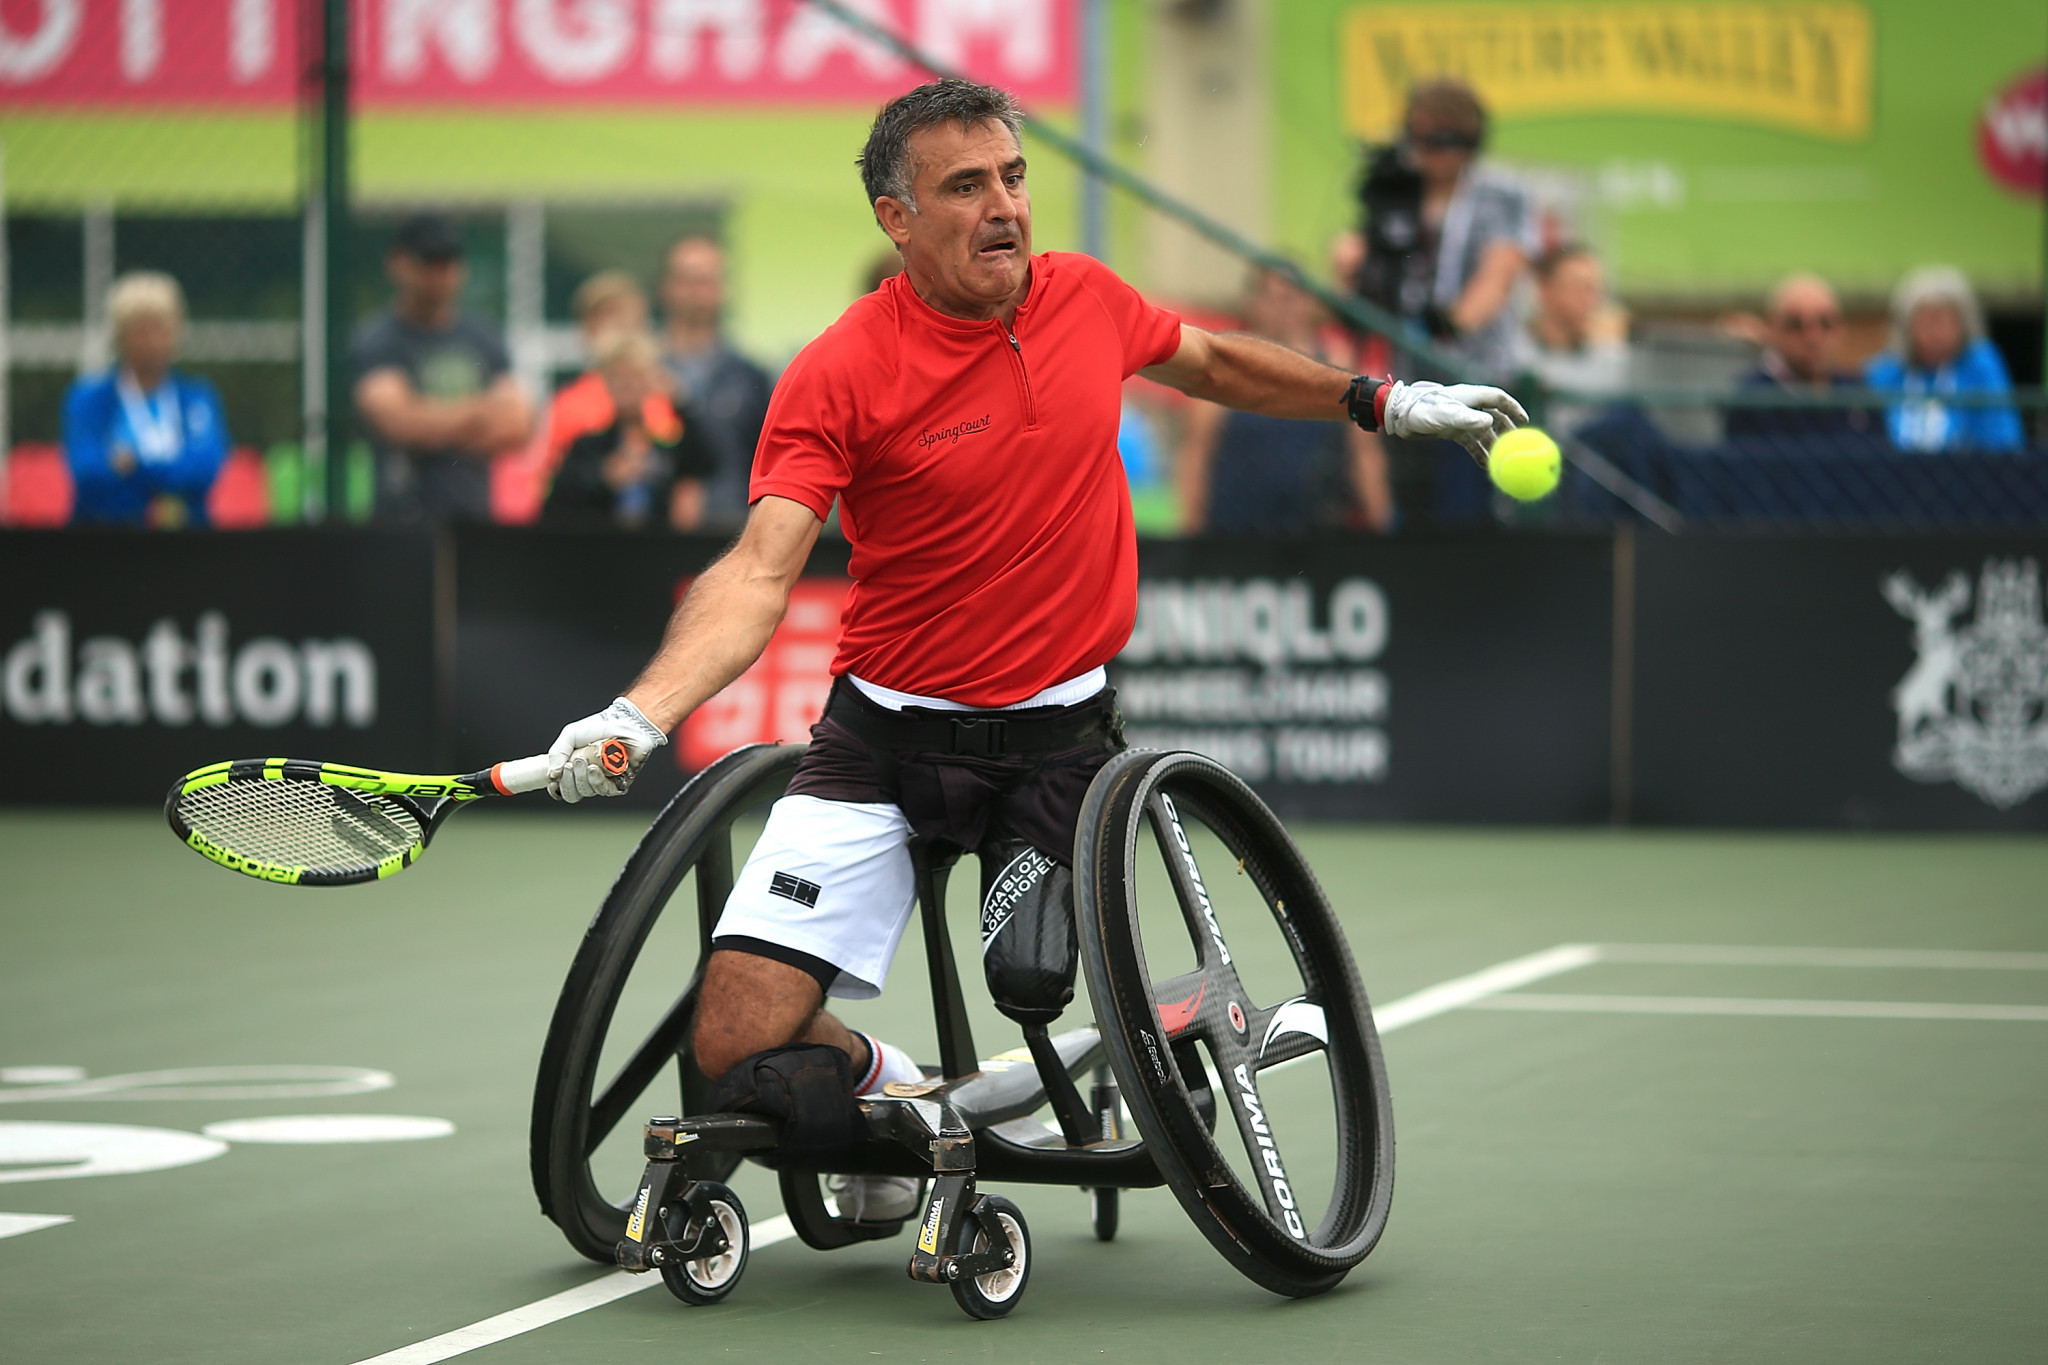 Stephane Houdet battled to victory in the men's singles final ©Getty Images